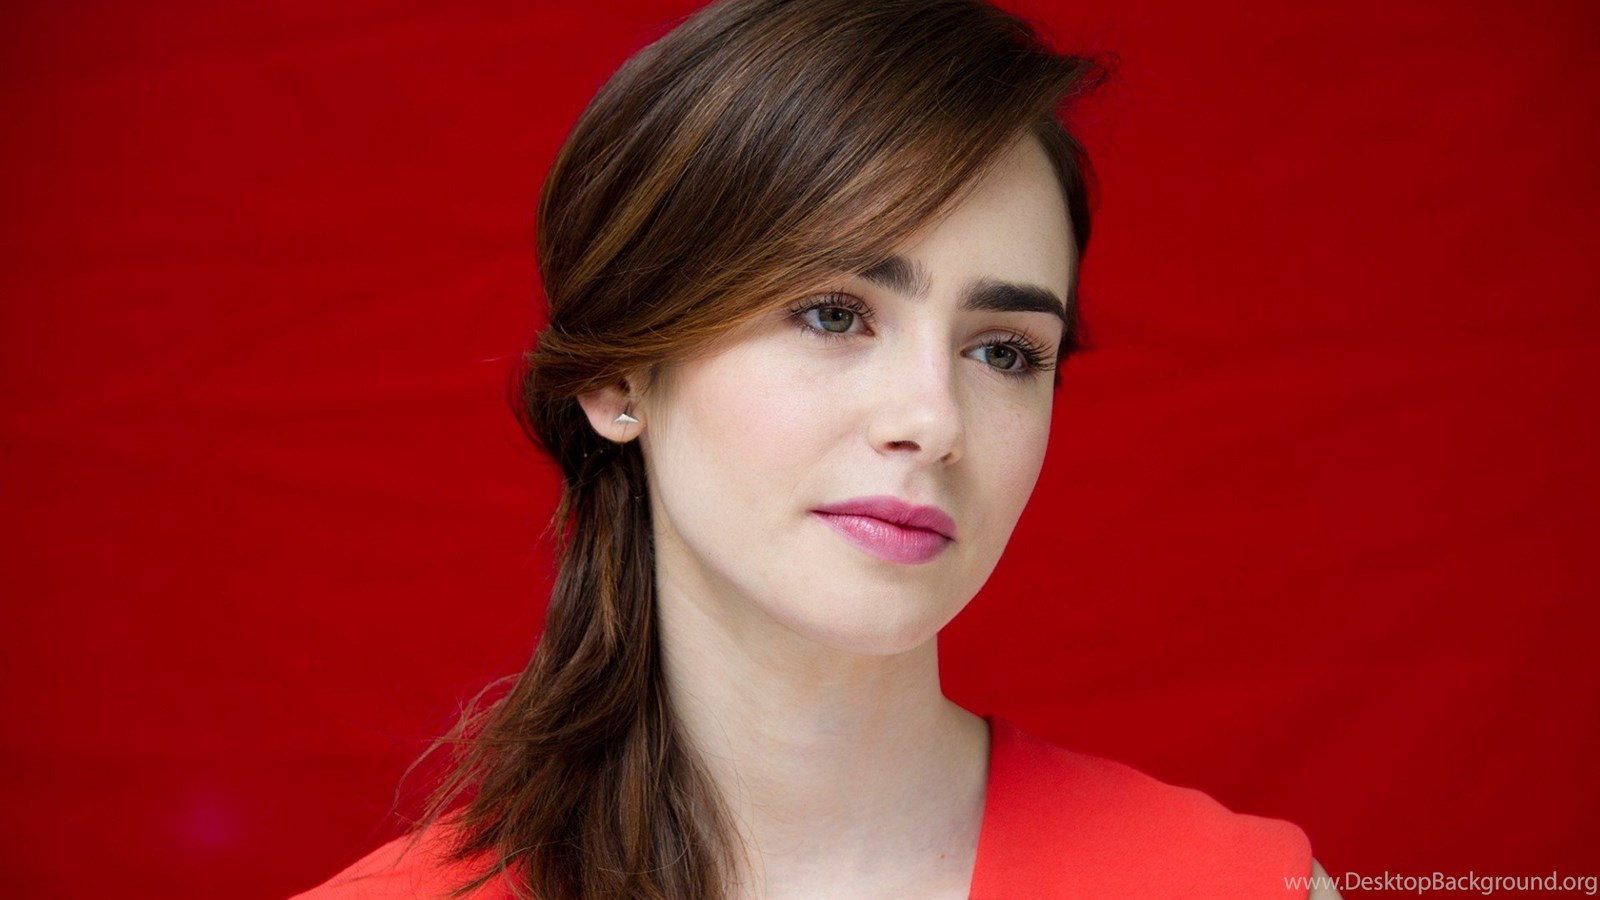 lily collins wallpapers desktop background